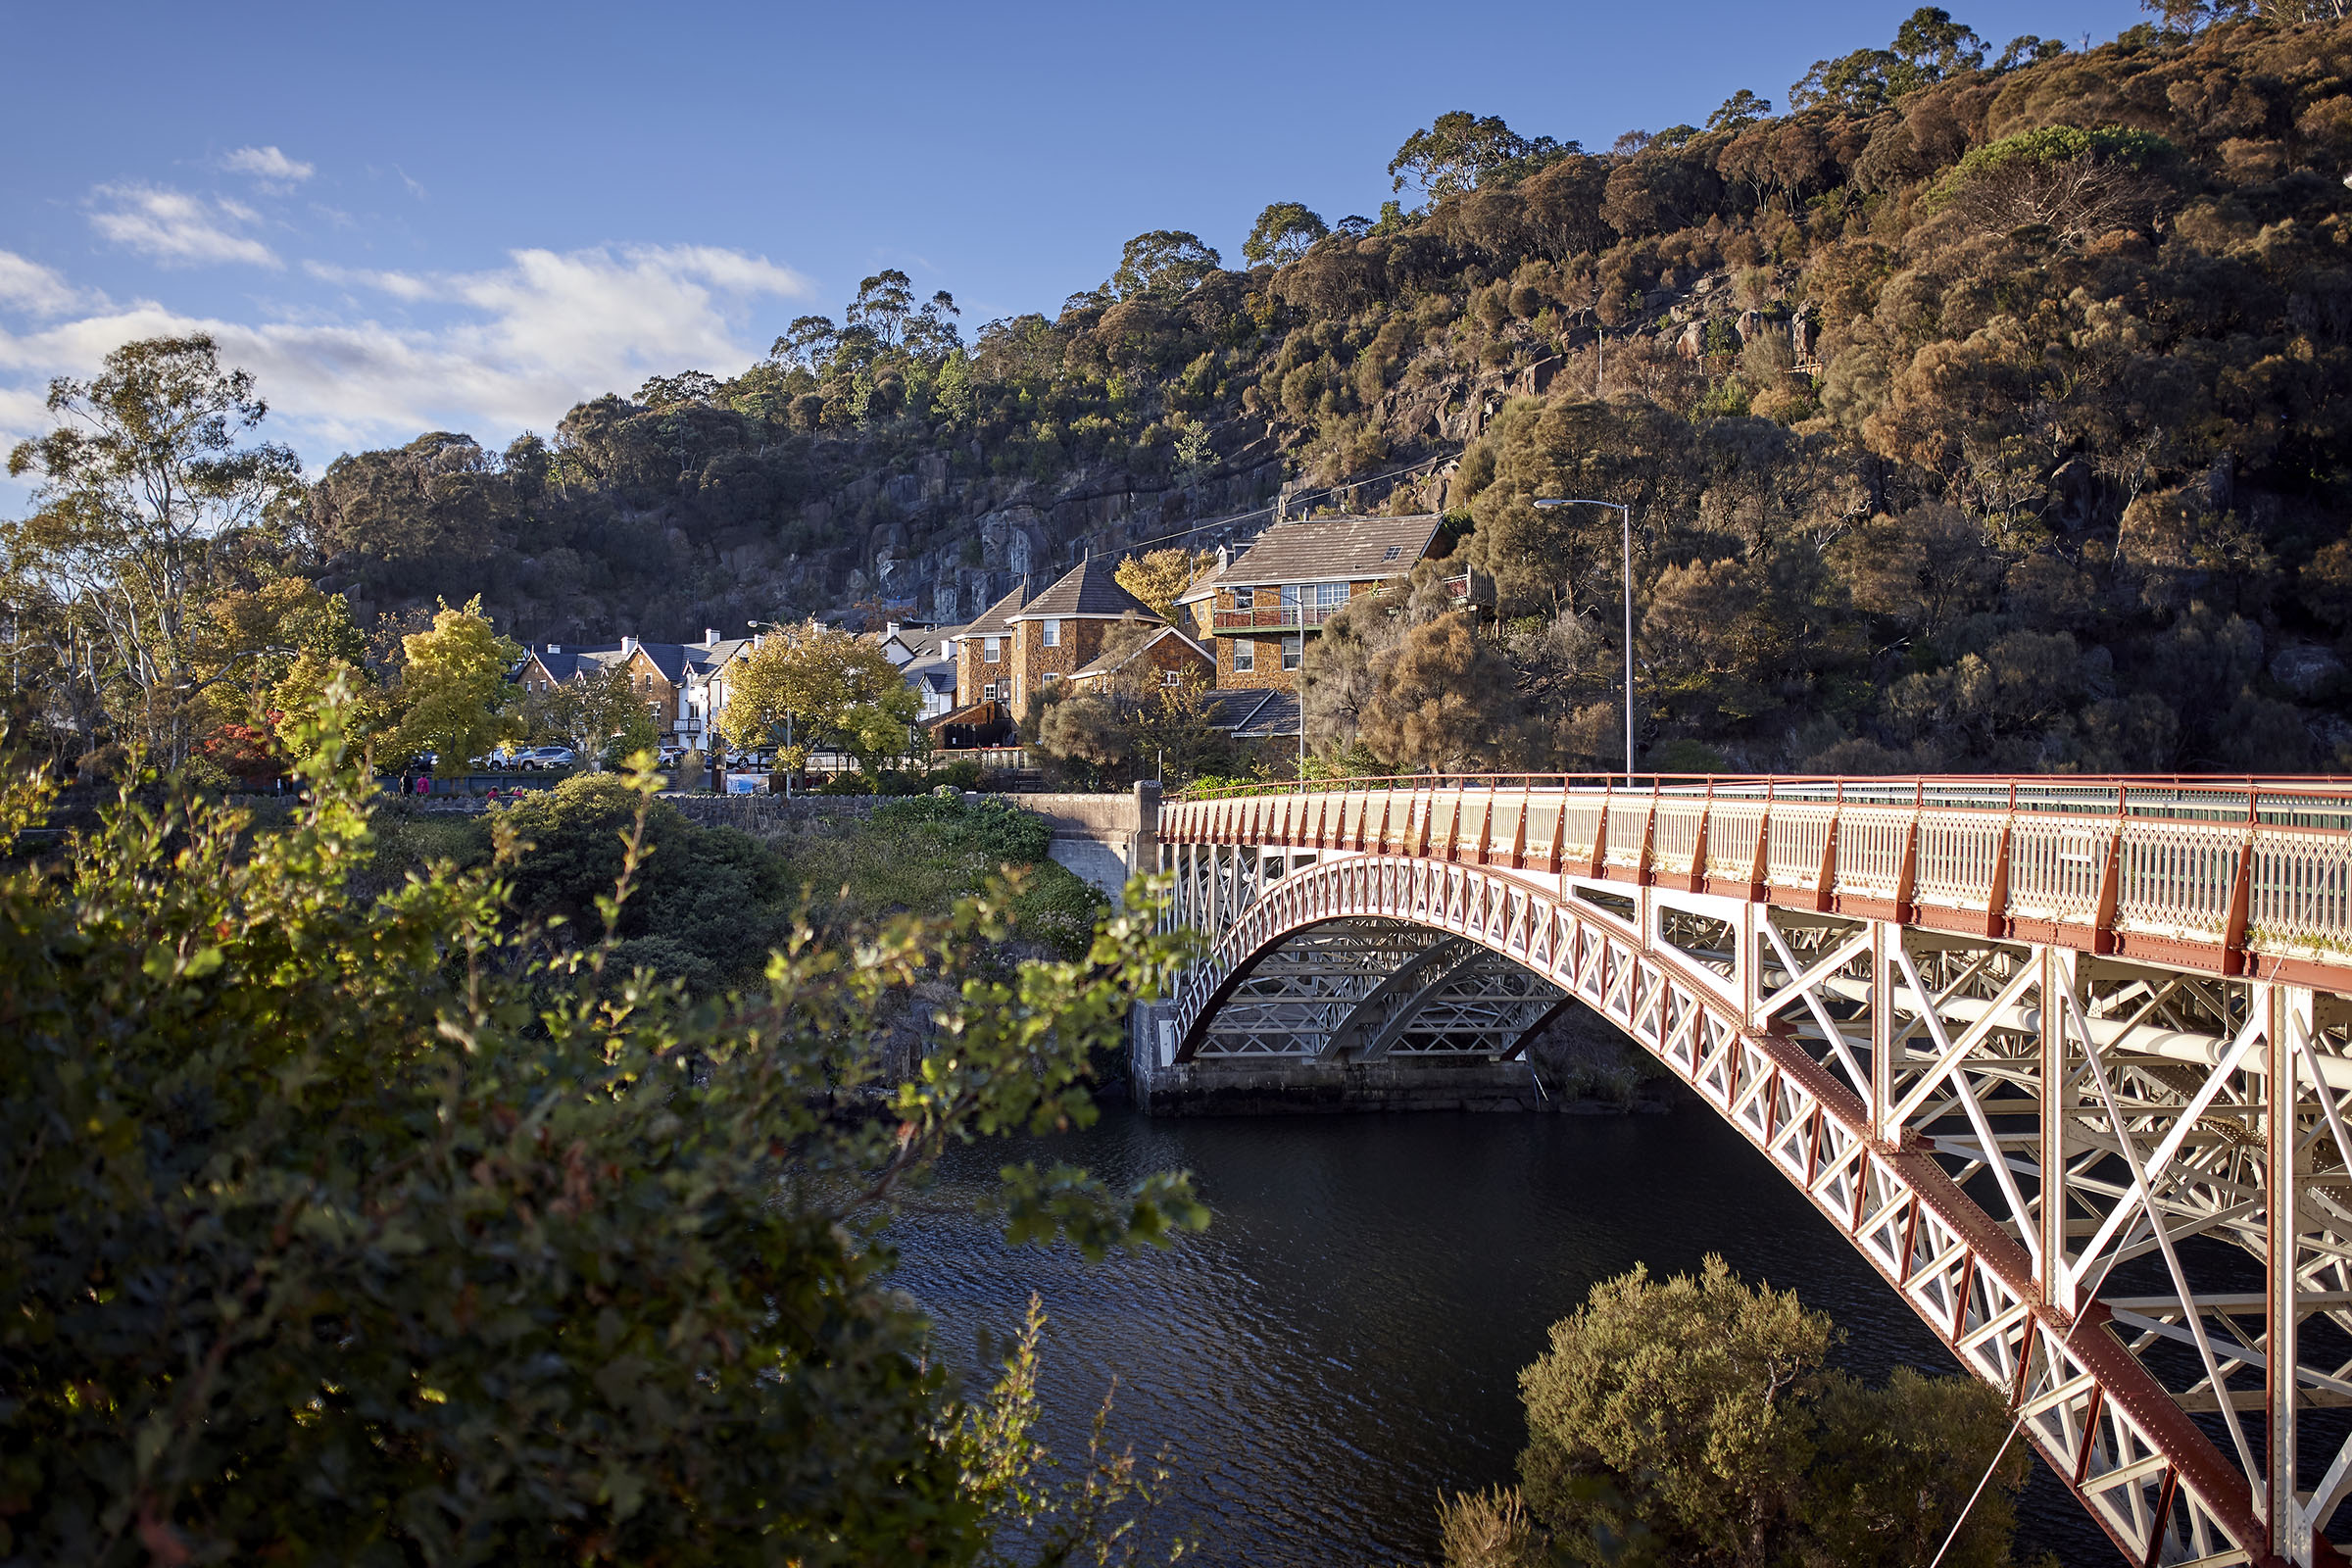 Kings Bridge Launceston 2019